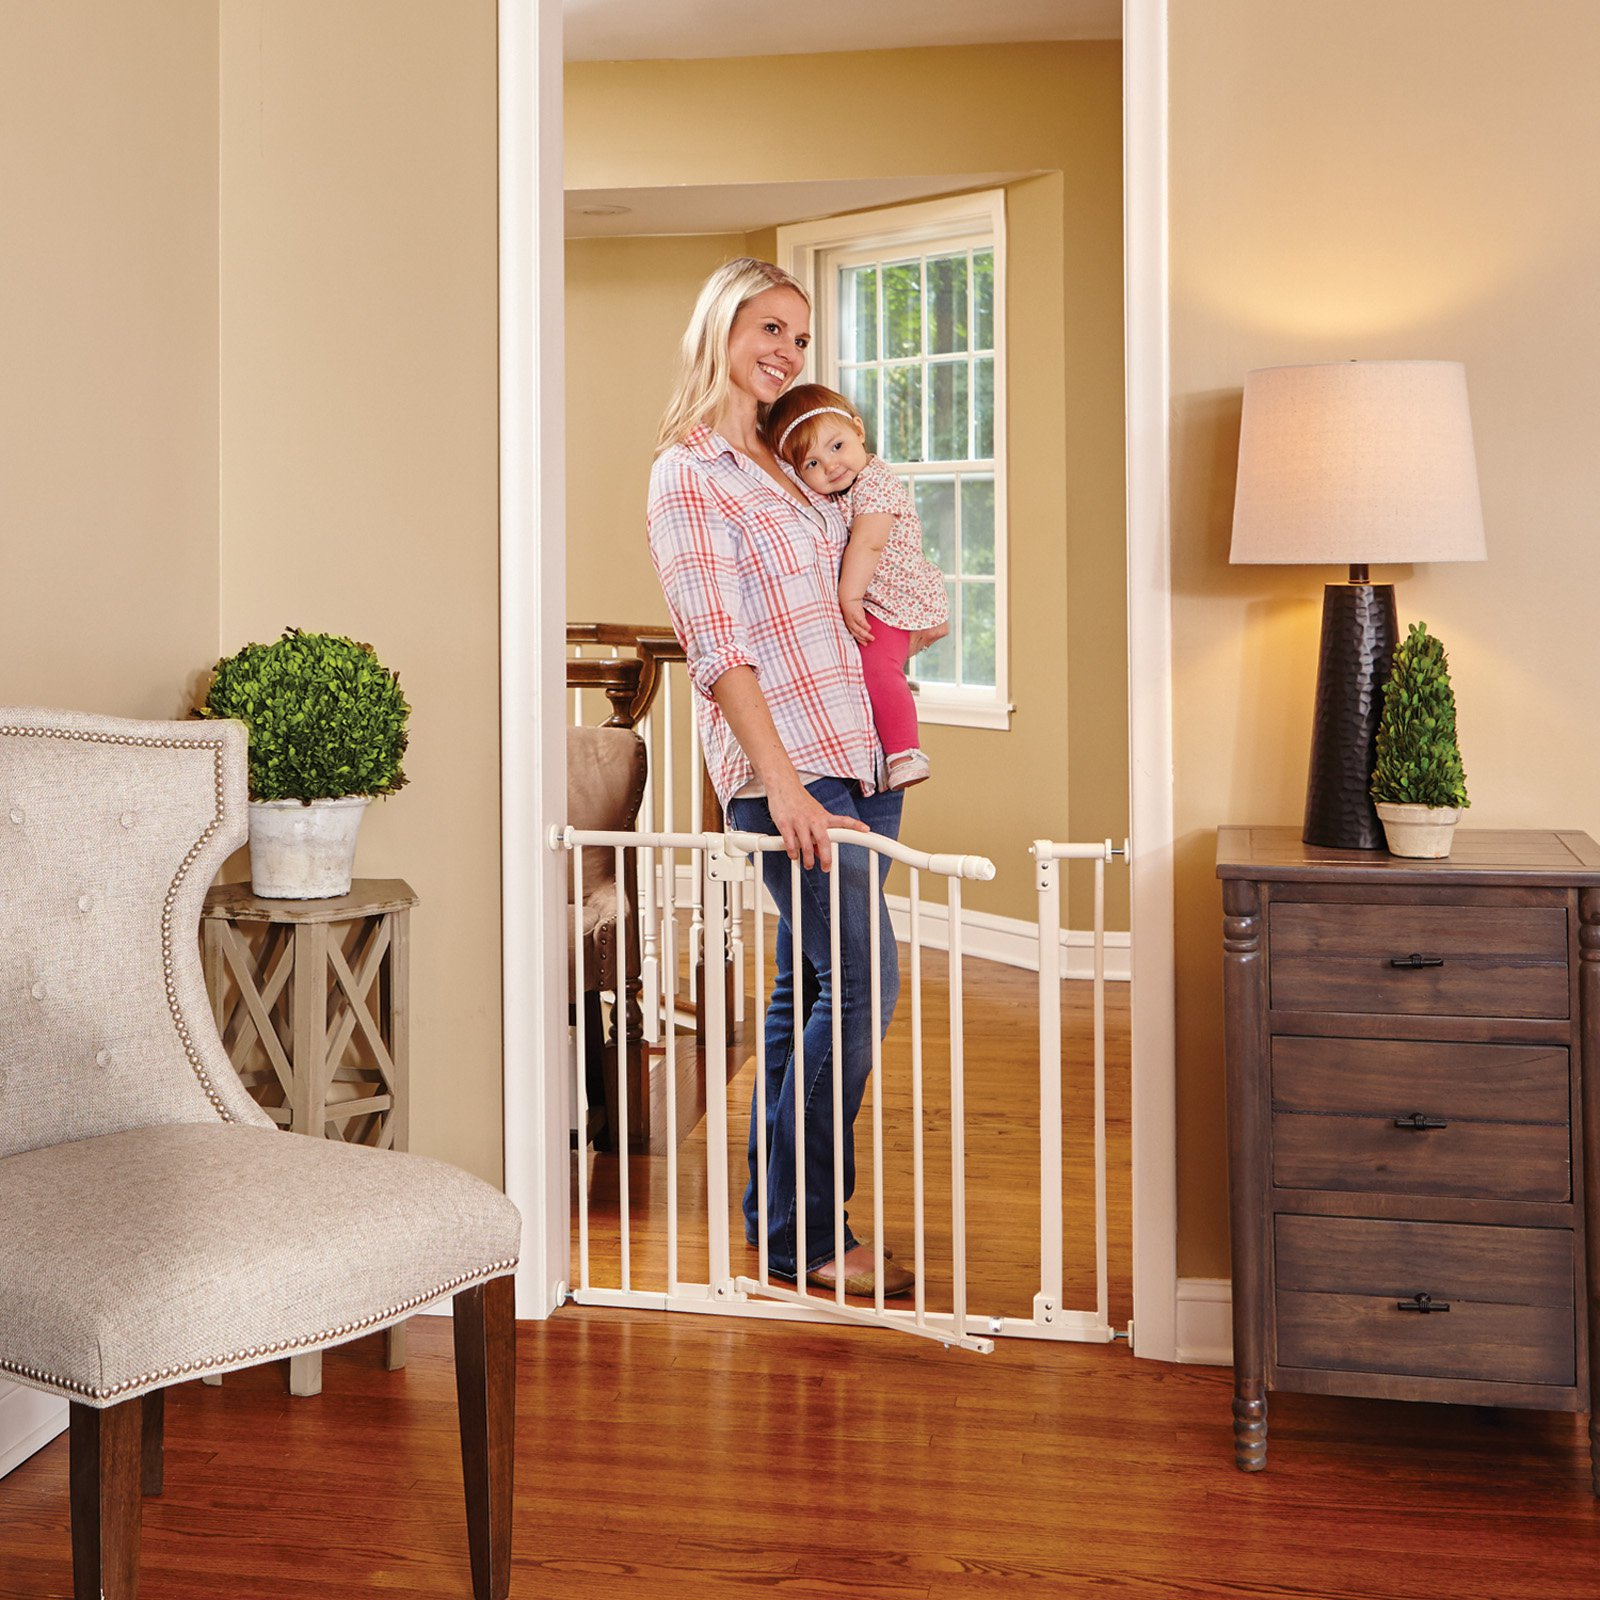 North States Arched Auto-Close Safety Gate with Easy Step